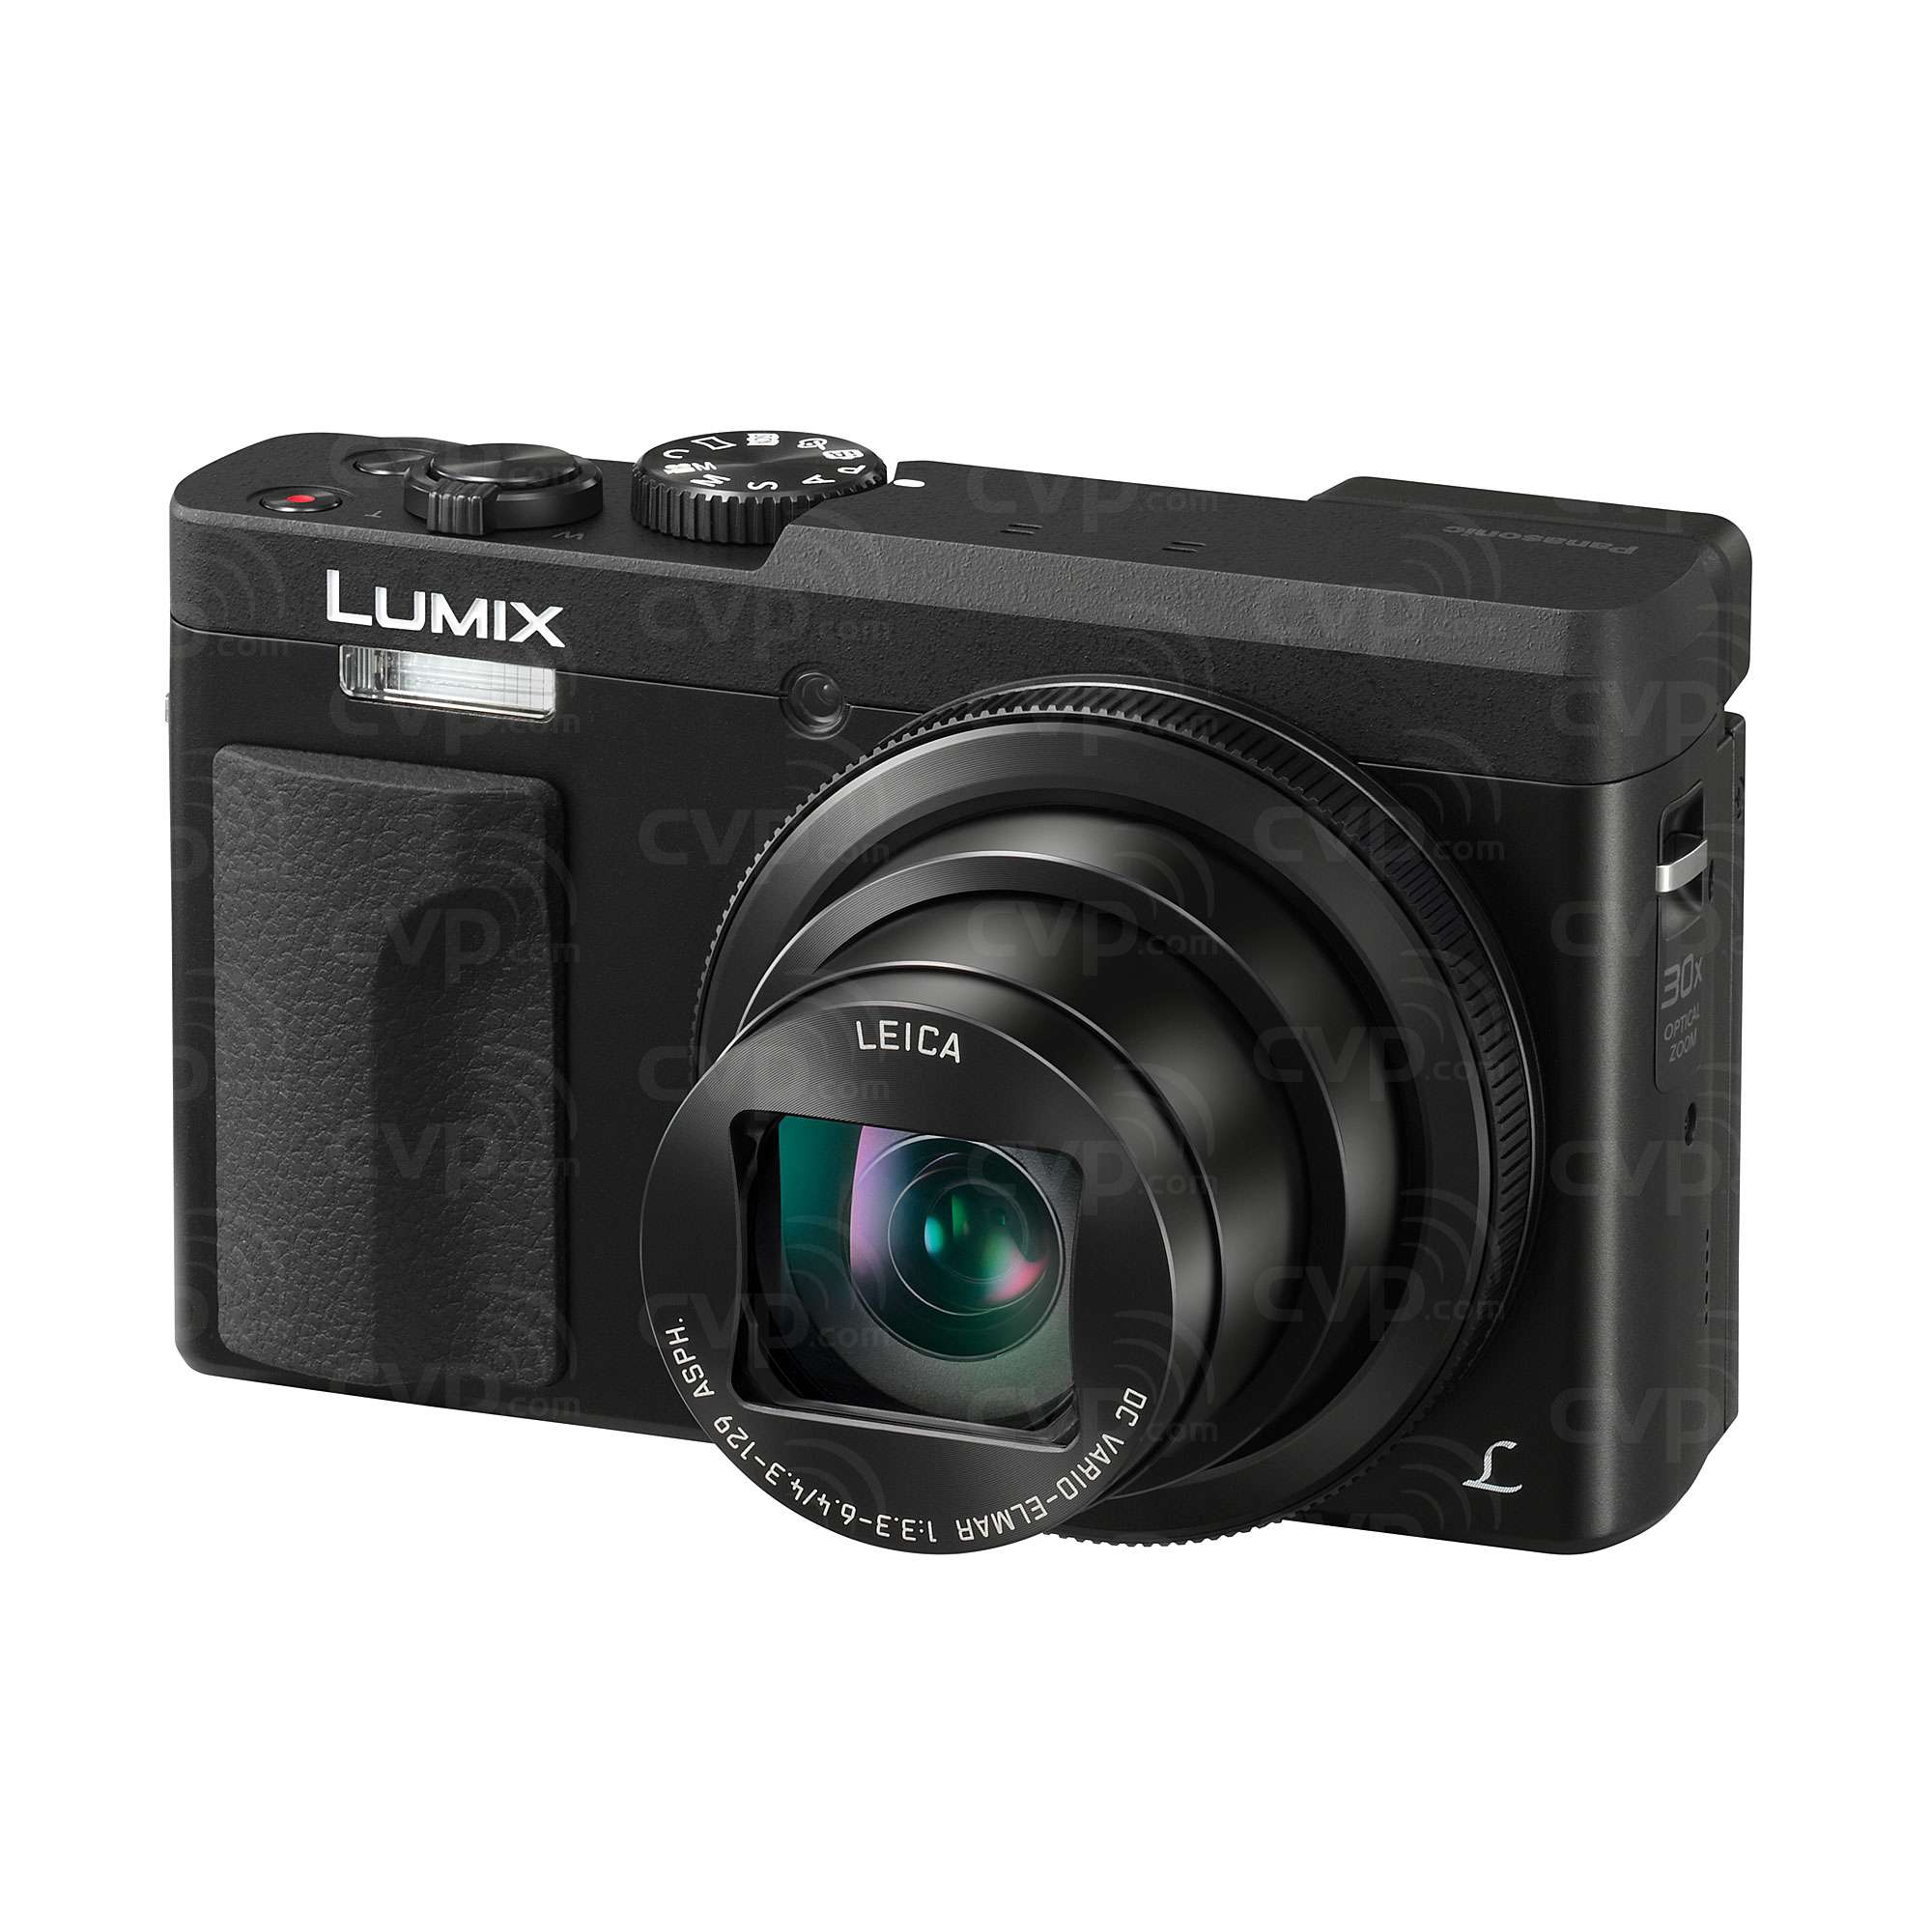 Panasonic Lumix DC-TZ90 20.3 MP 30x Digital Compact Camera with 4K and 180 Degree Tilt LCD - (Black or Silver)